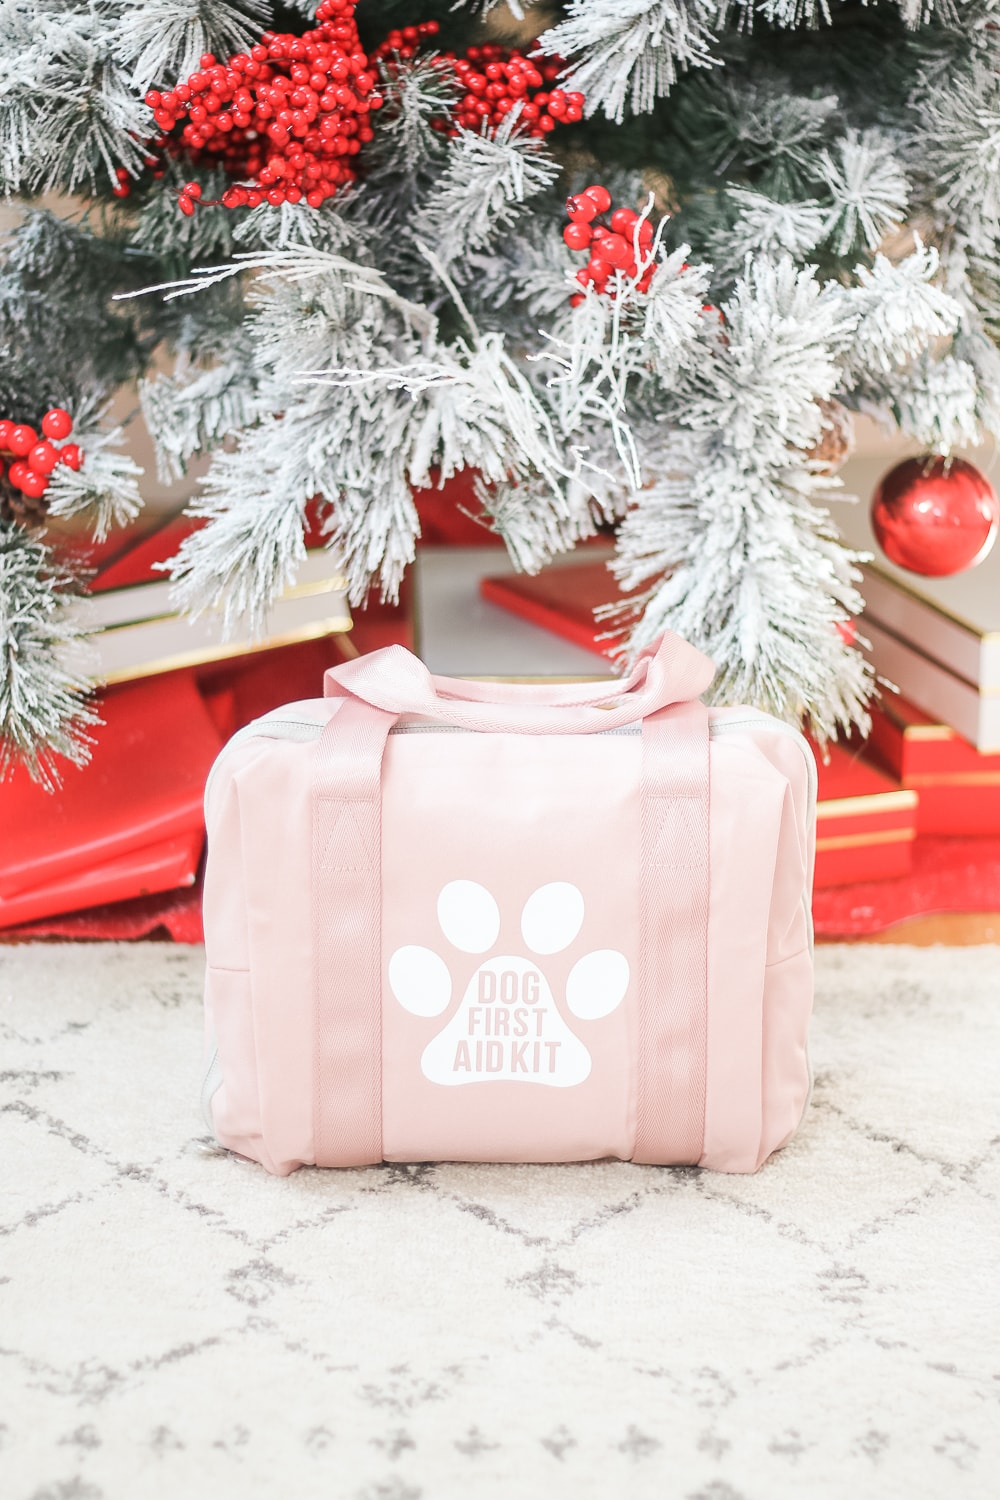 Southern blogger Stephanie Ziajka shows how to make your own DIY dog first aid kit on Diary of a Debutante